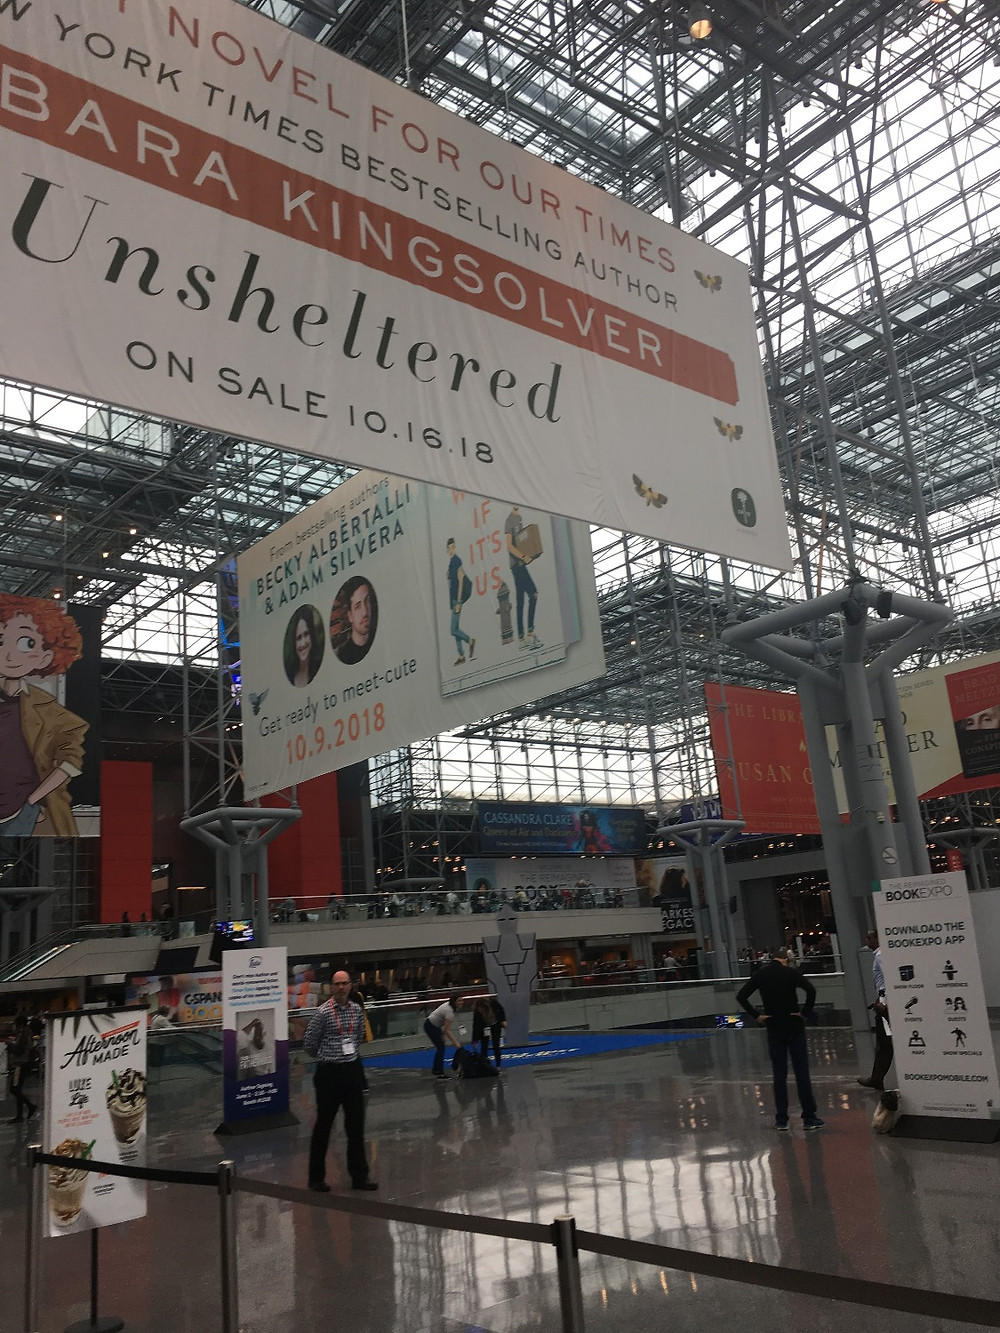 The entrance to the exhibit hall at Book Expo